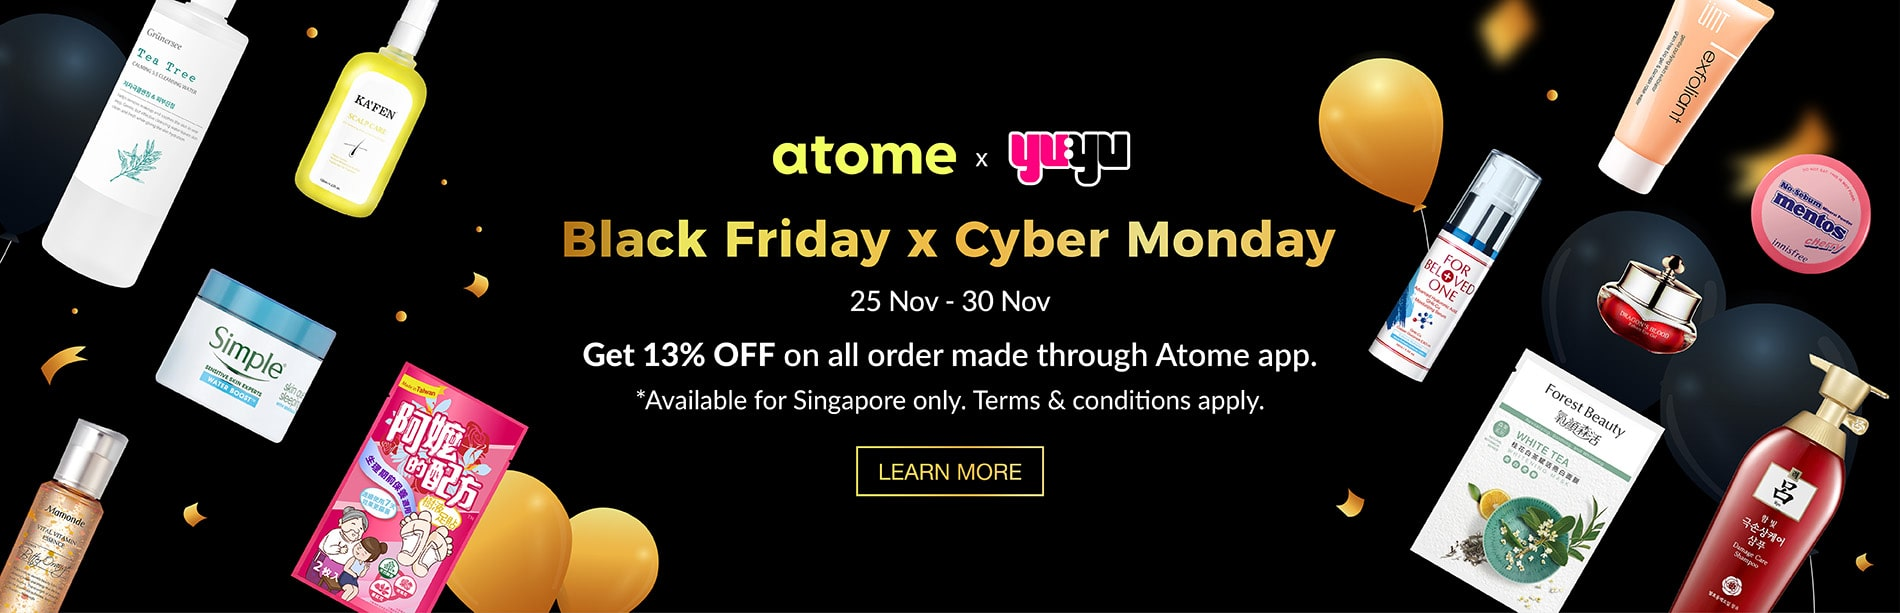 Atome Black Friday-main-01-min